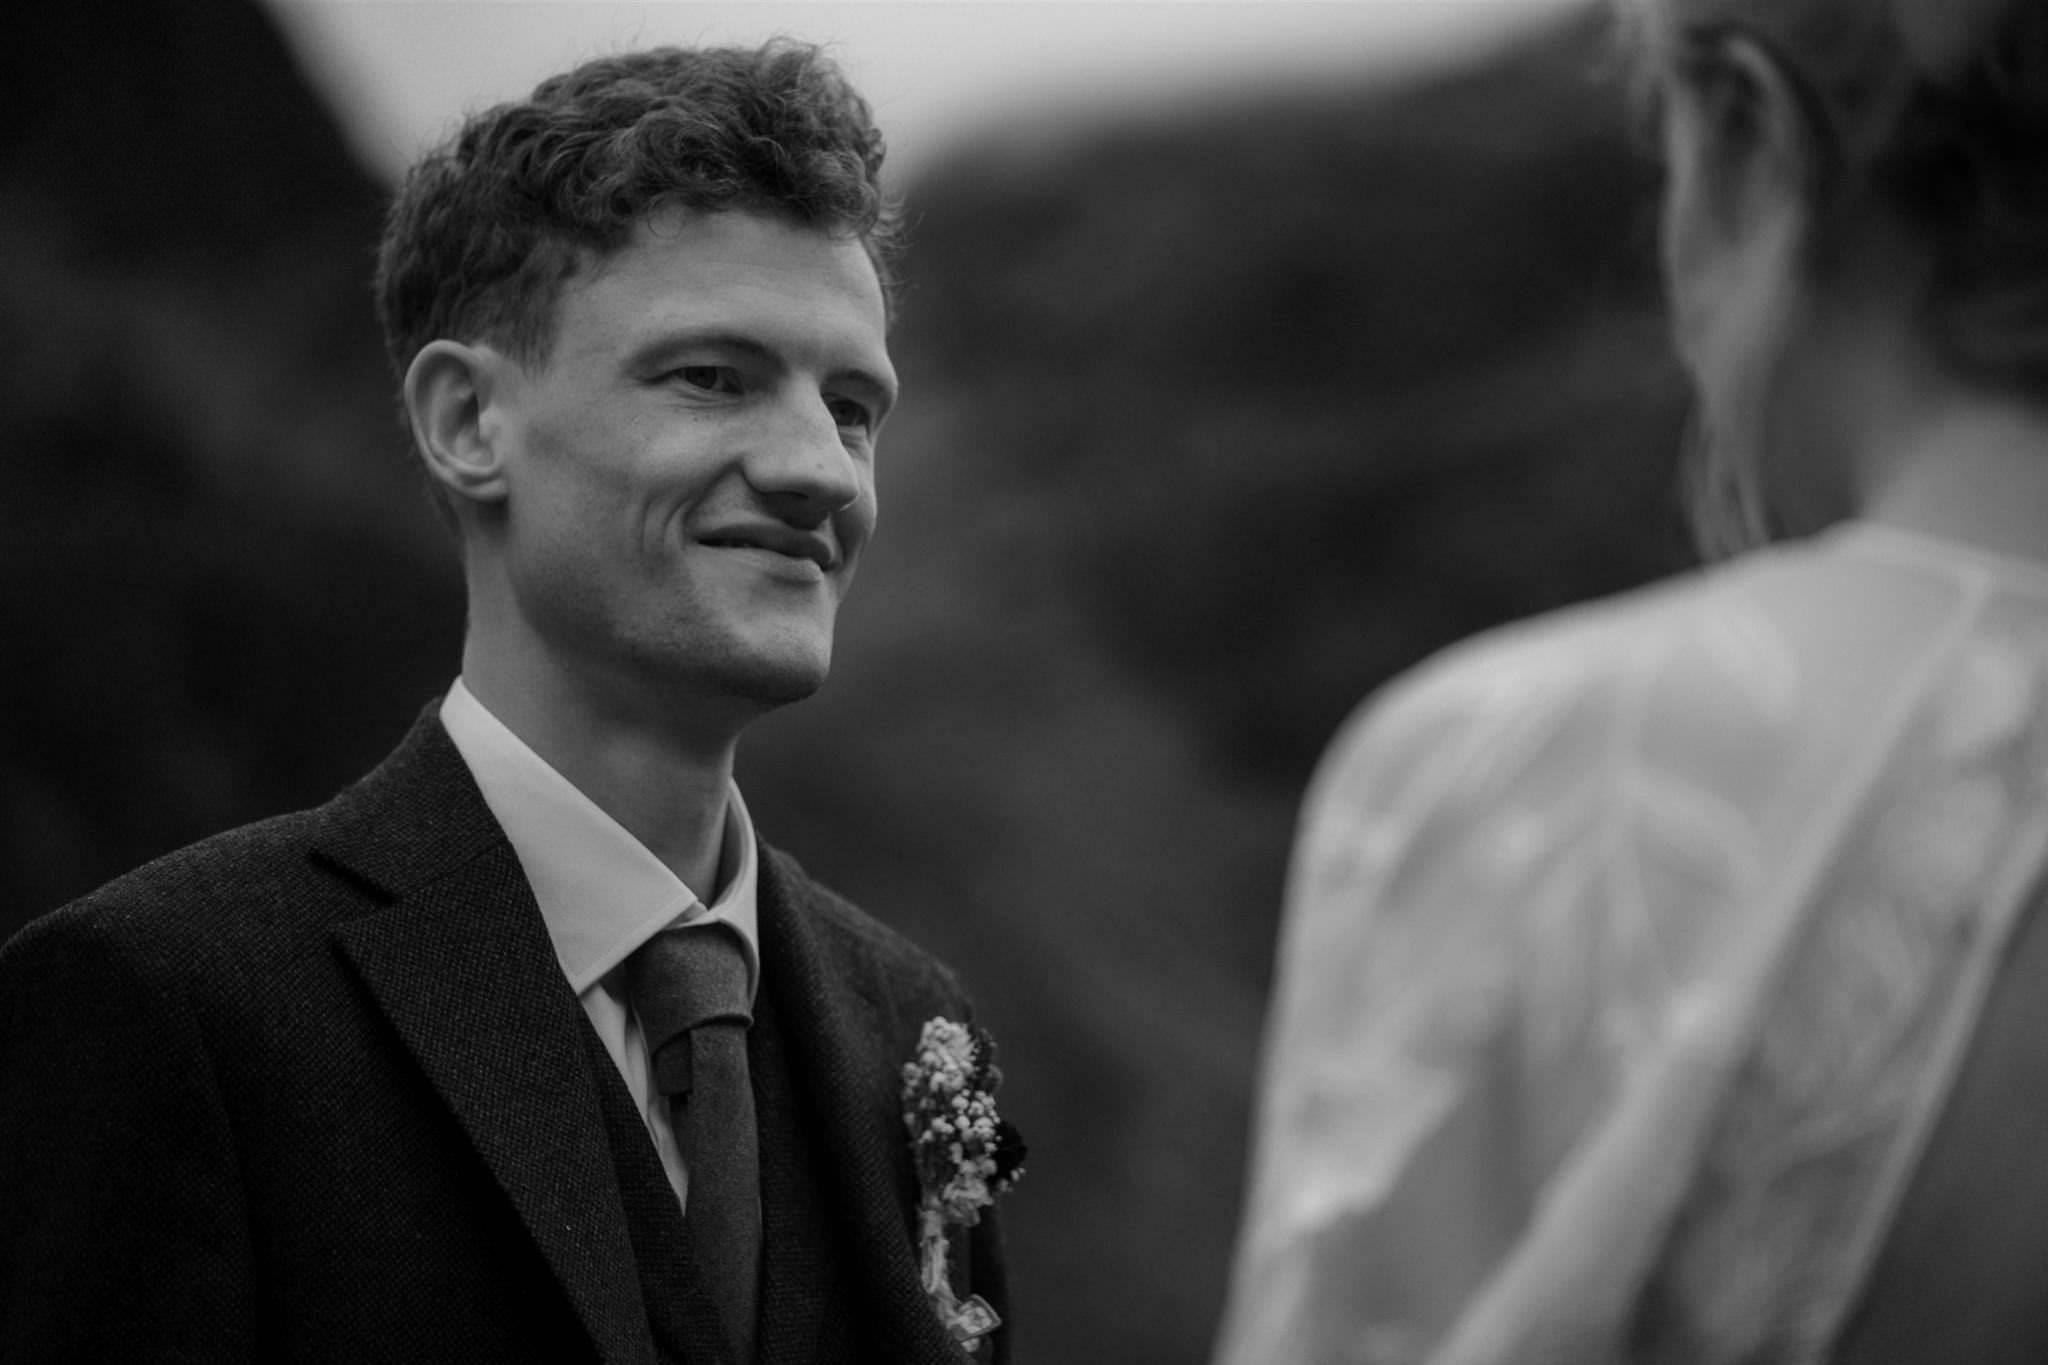 Groom during a Glencoe elopement wedding ceremony